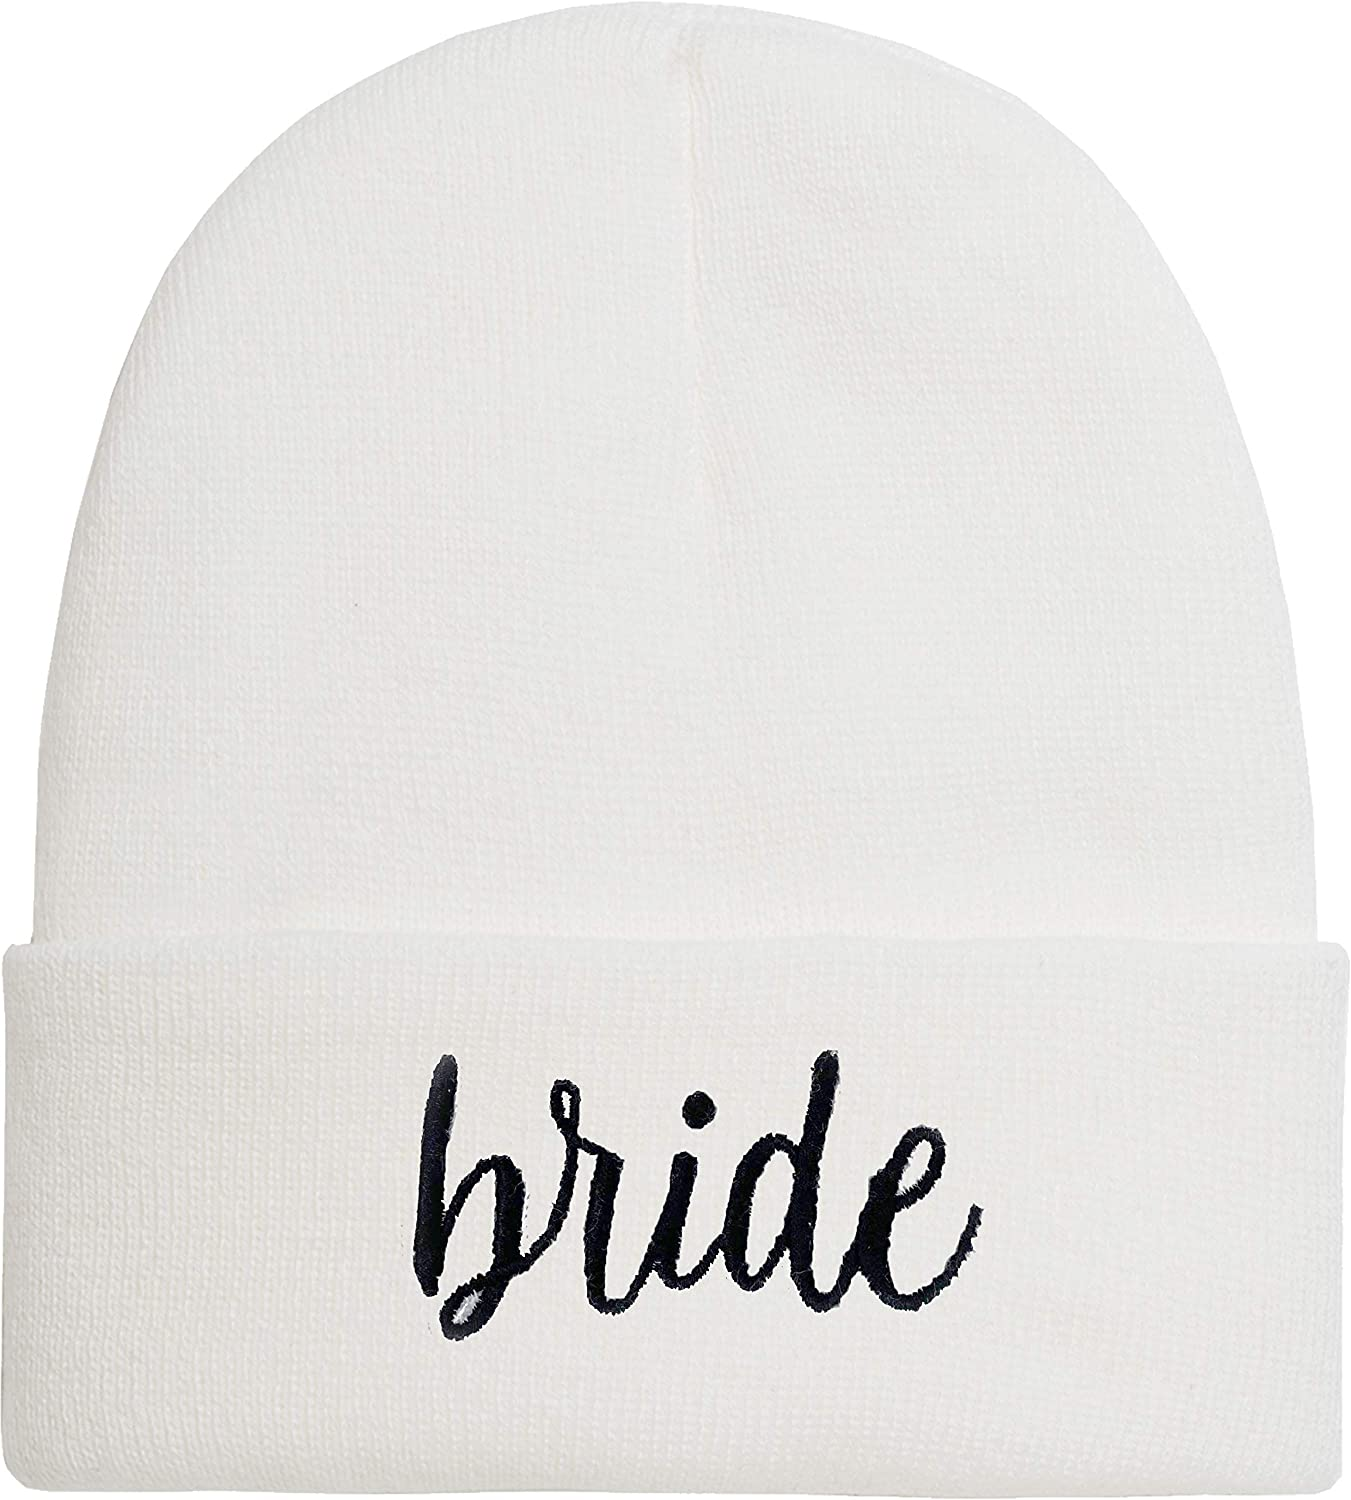 Bridal Beanie - Bride - White (Black Letters) : Clothing, Shoes & Jewelry